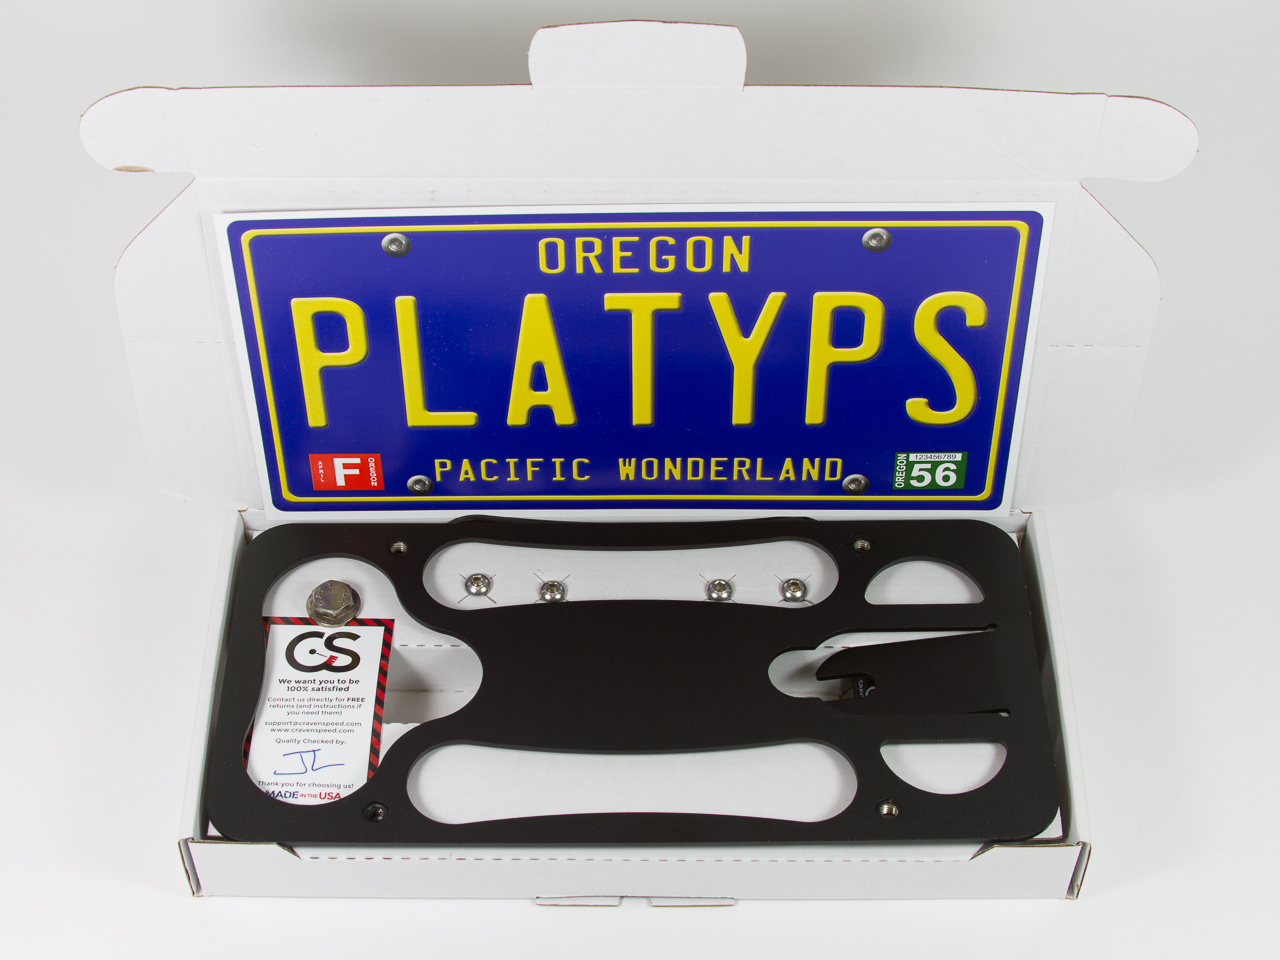 Assembled kit of The Platypus License Plate Mount for 2013-2019 Ford Escape